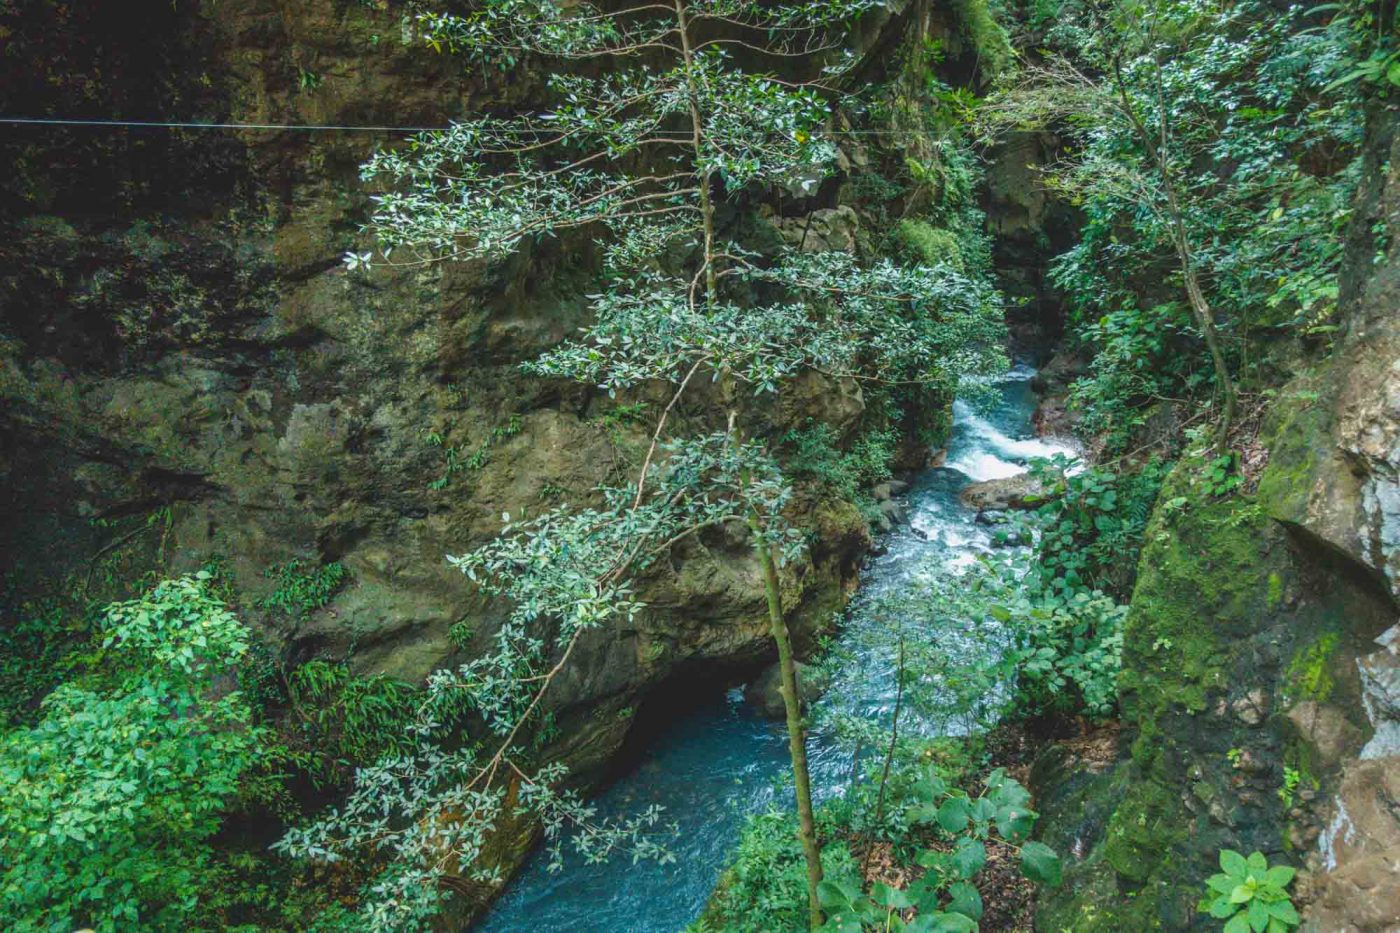 Guide to Ecotourism in Costa Rica